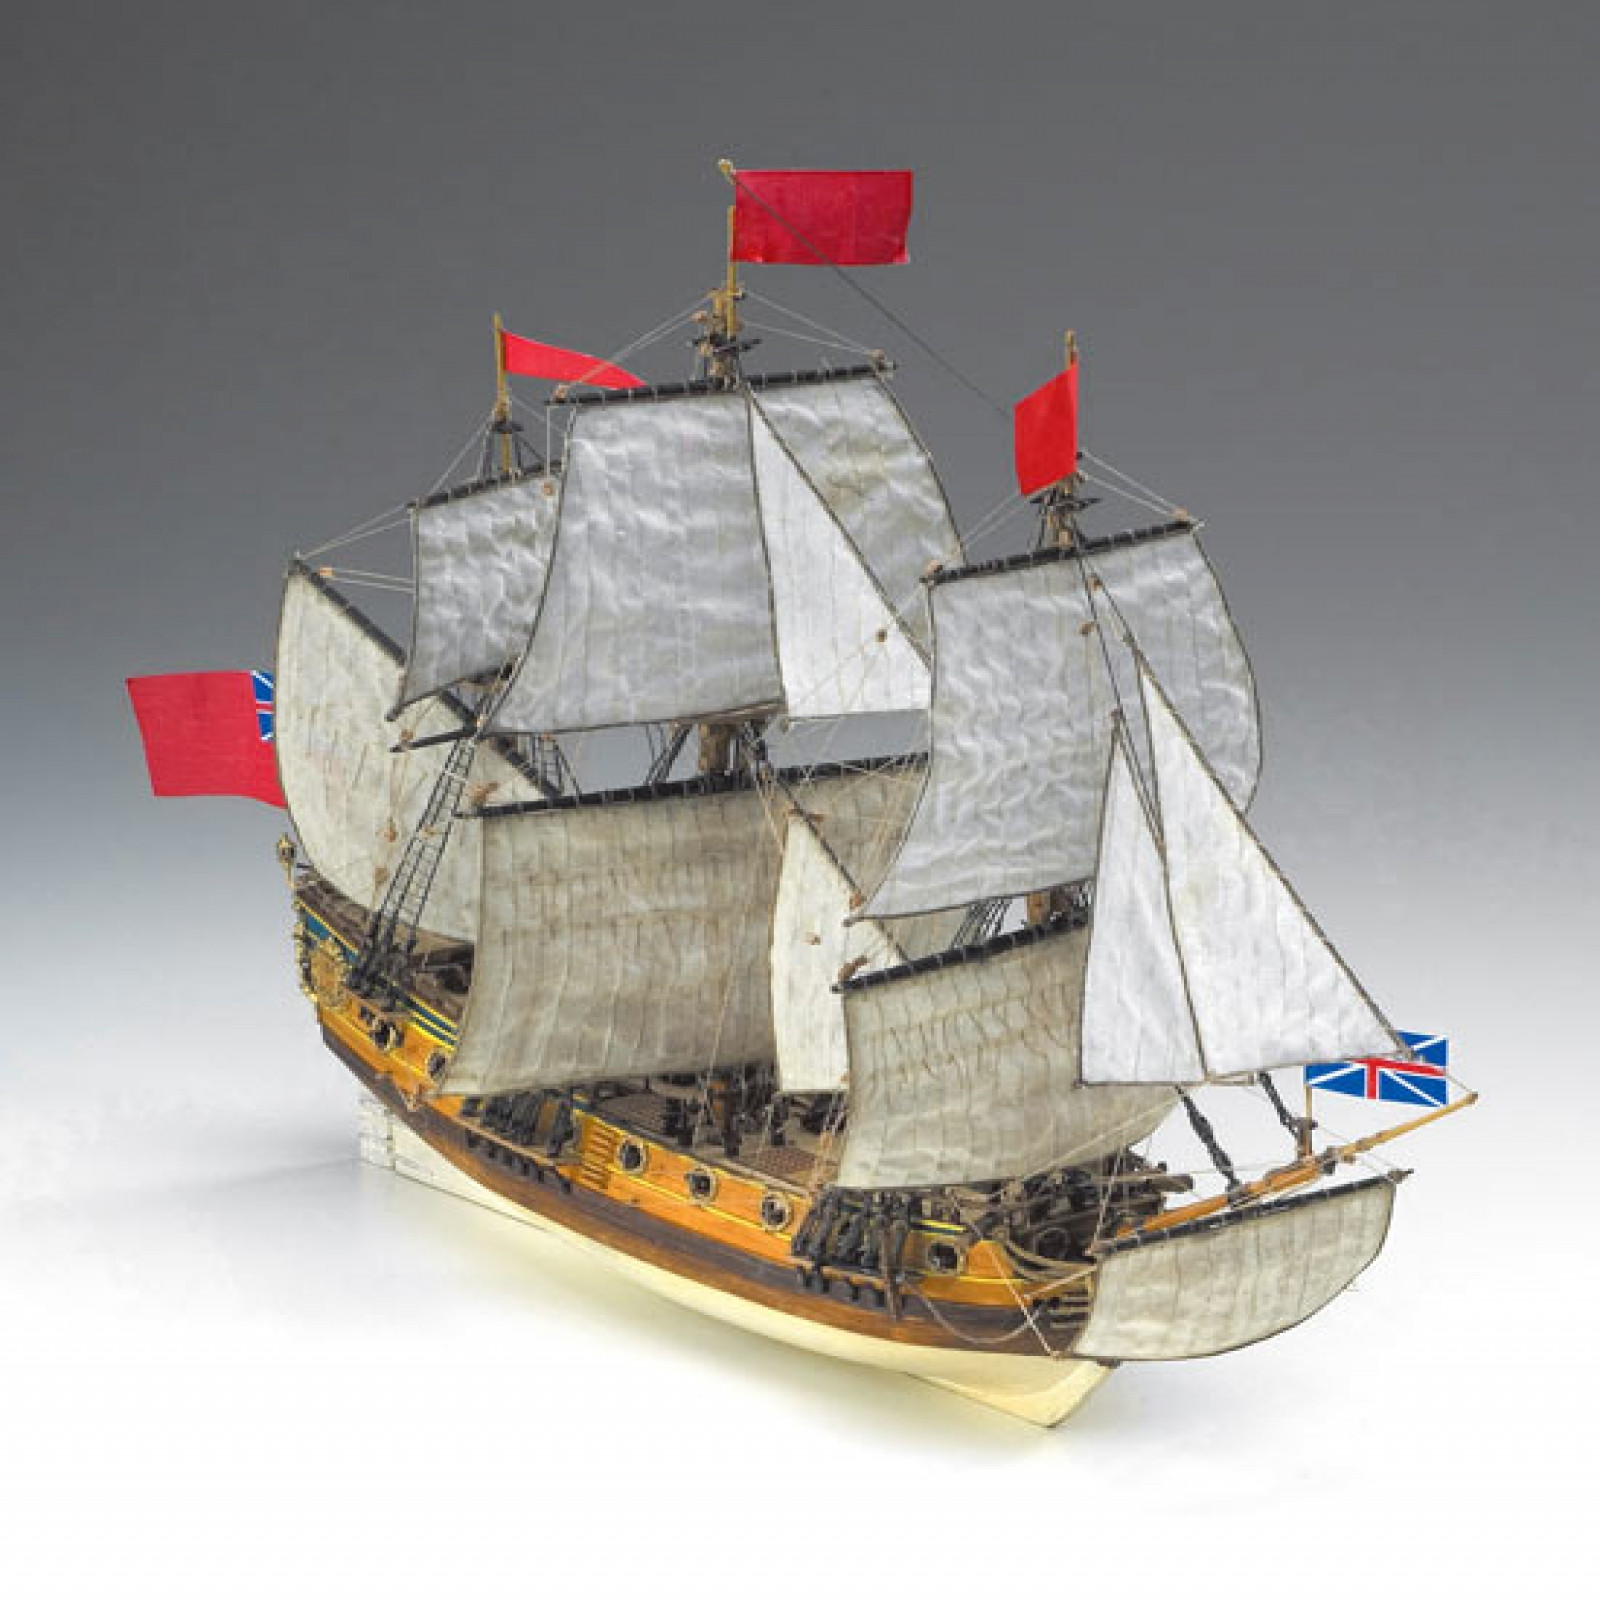 COREL HMS PEREGRINE WOOD SHIP KIT